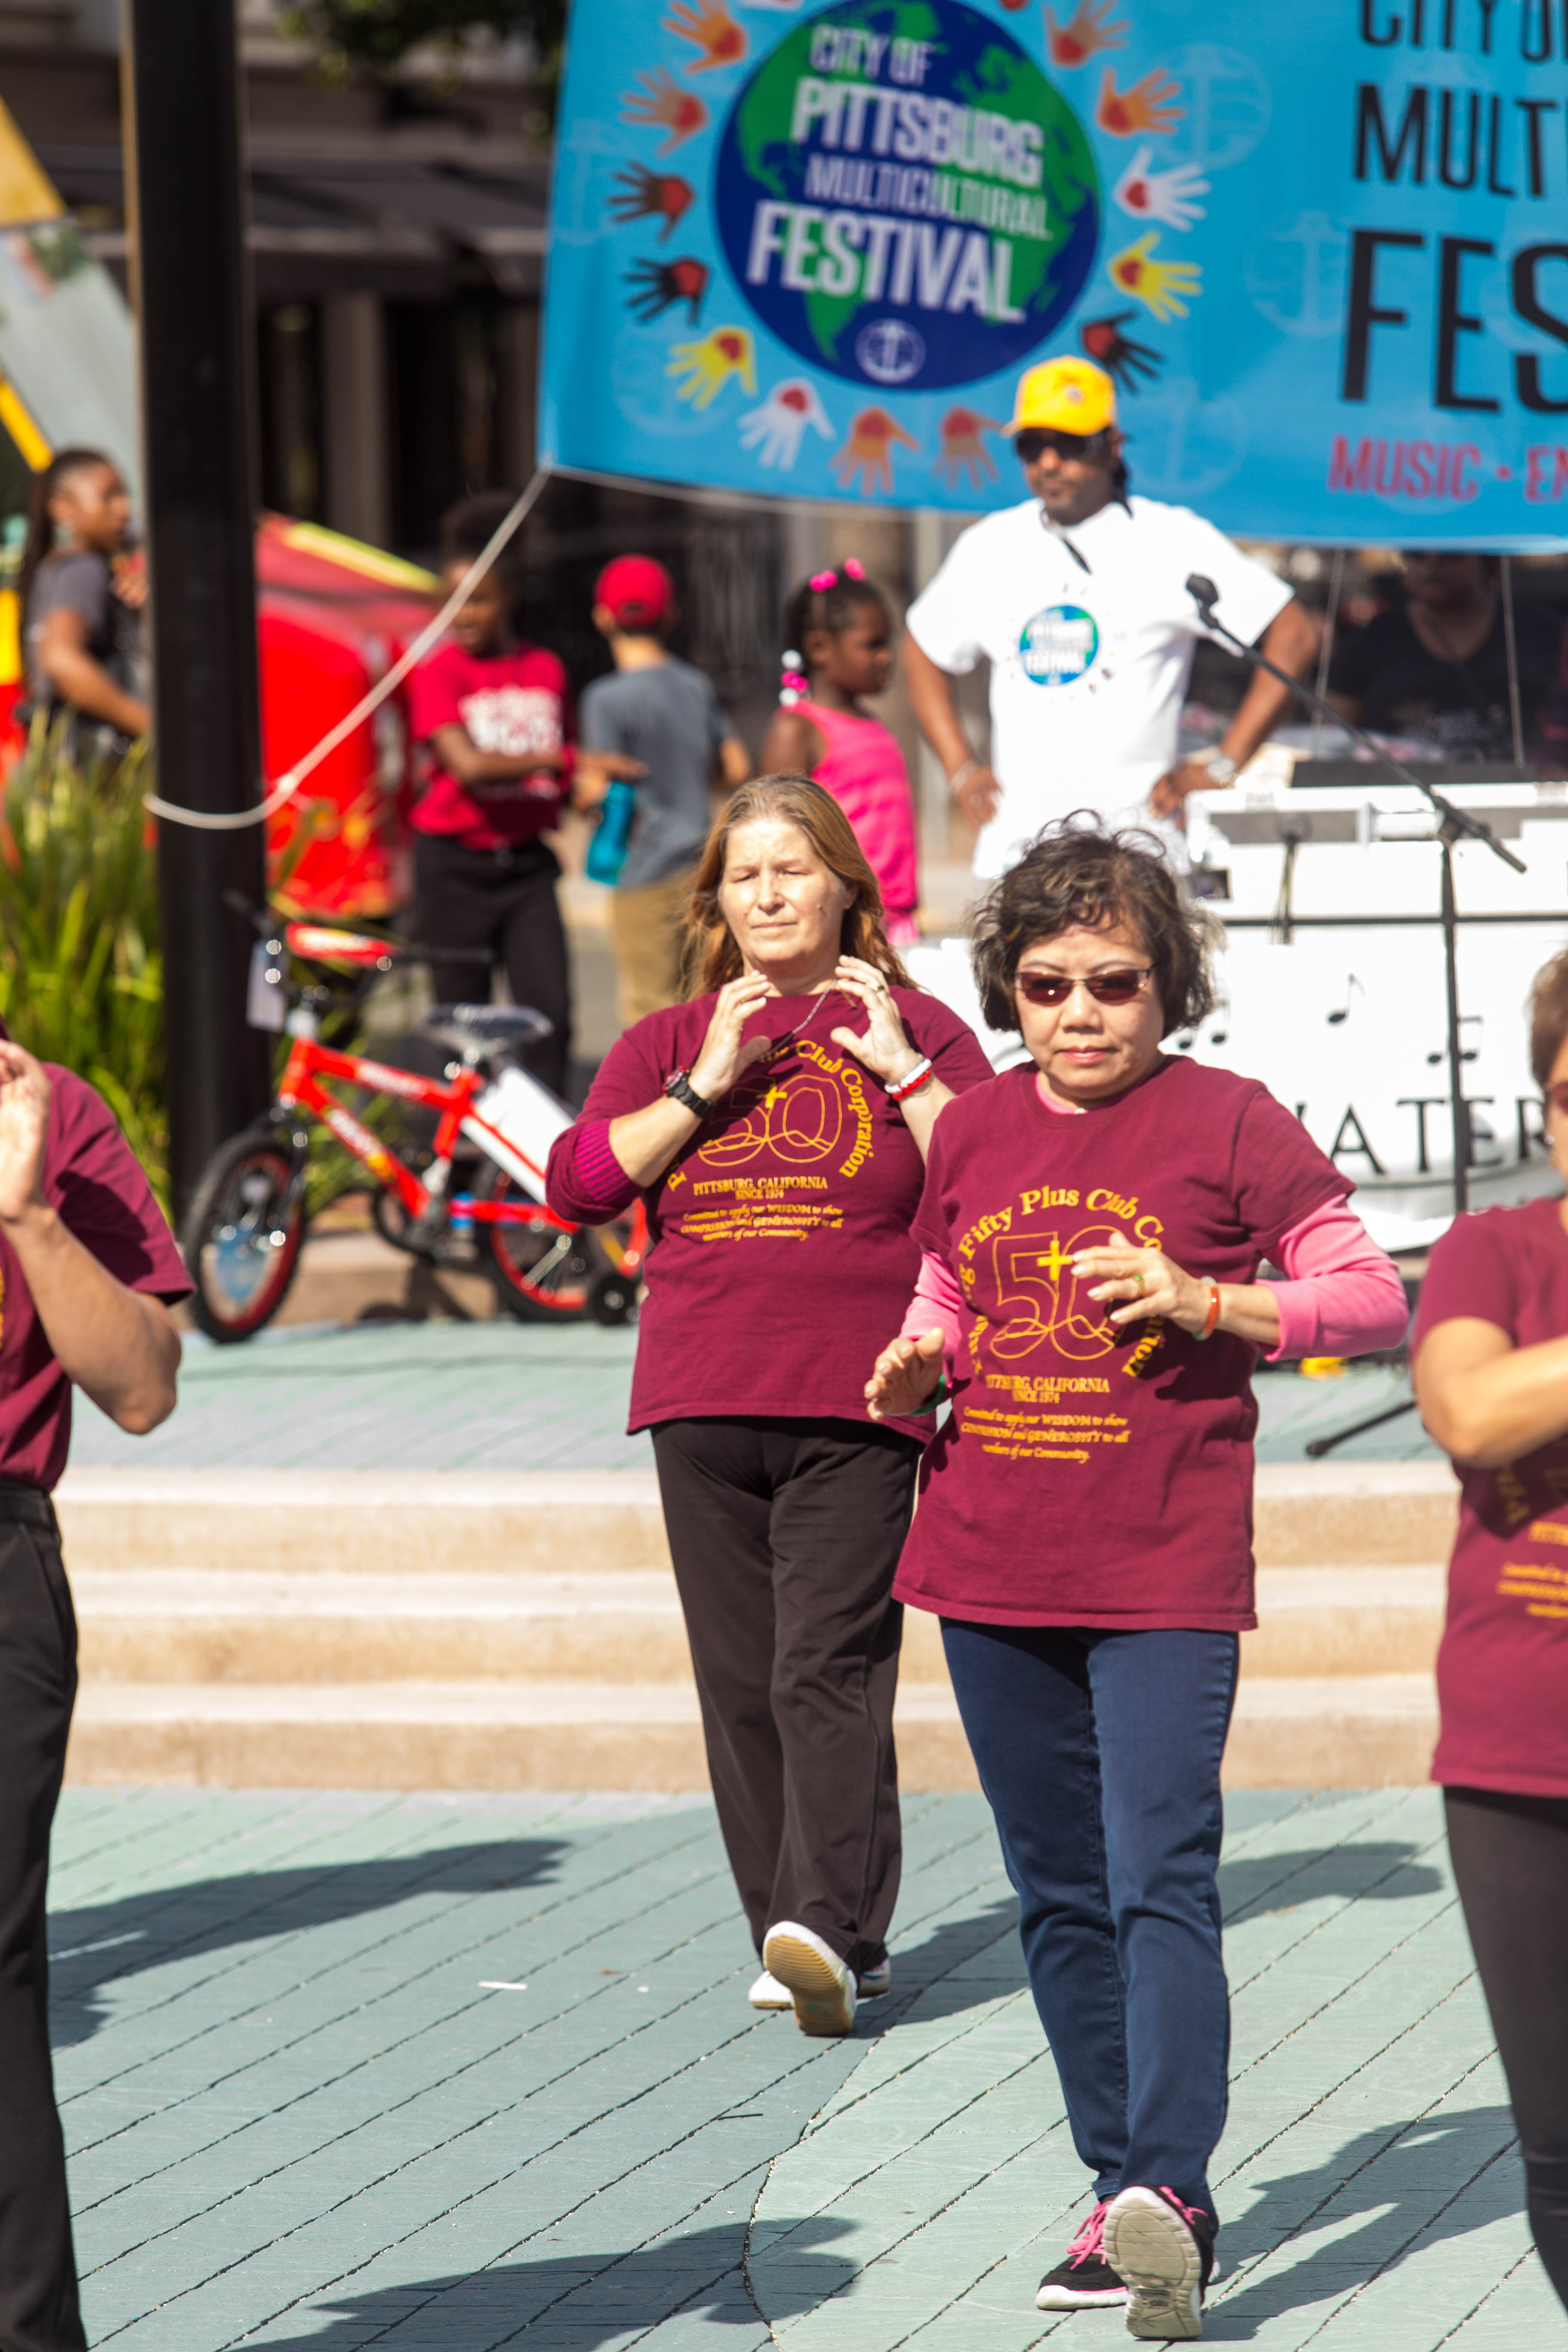 CITY_PITTSBURG_MULTICULTURAL_OCTOBER_2016 (517)